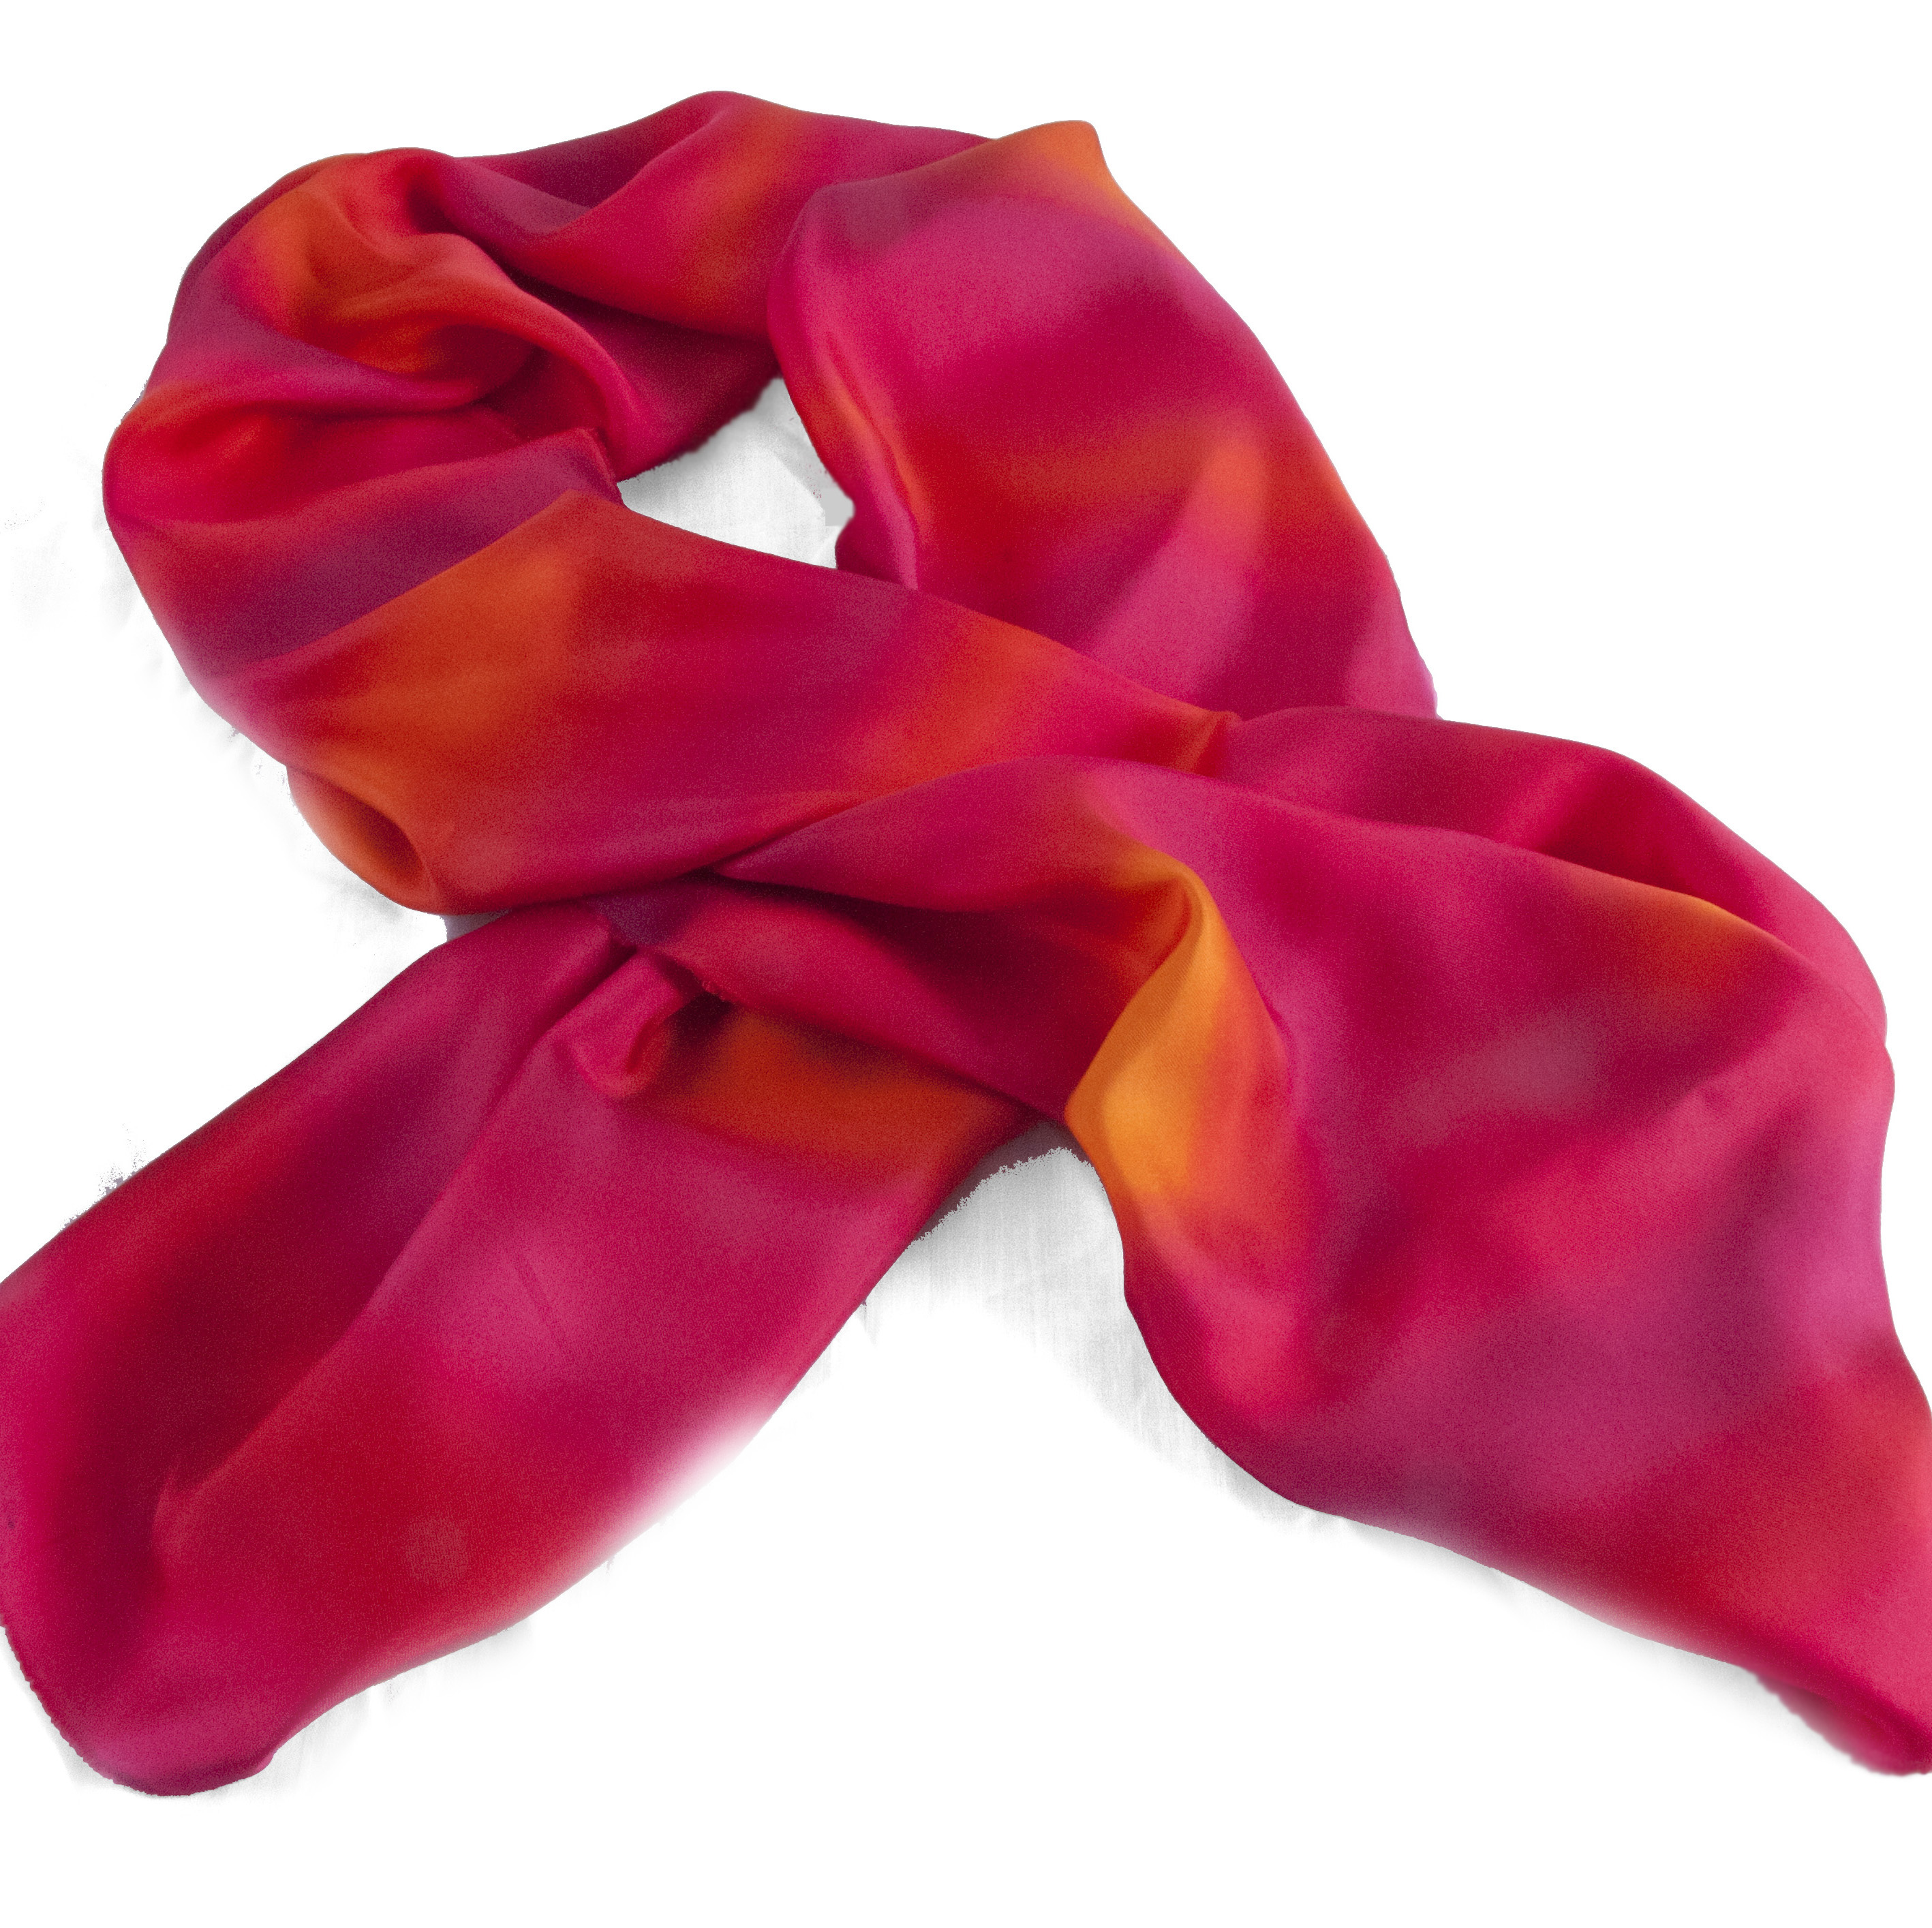 Long Hand painted Twill Silk Scarf in shades of reds, oranges and cerise